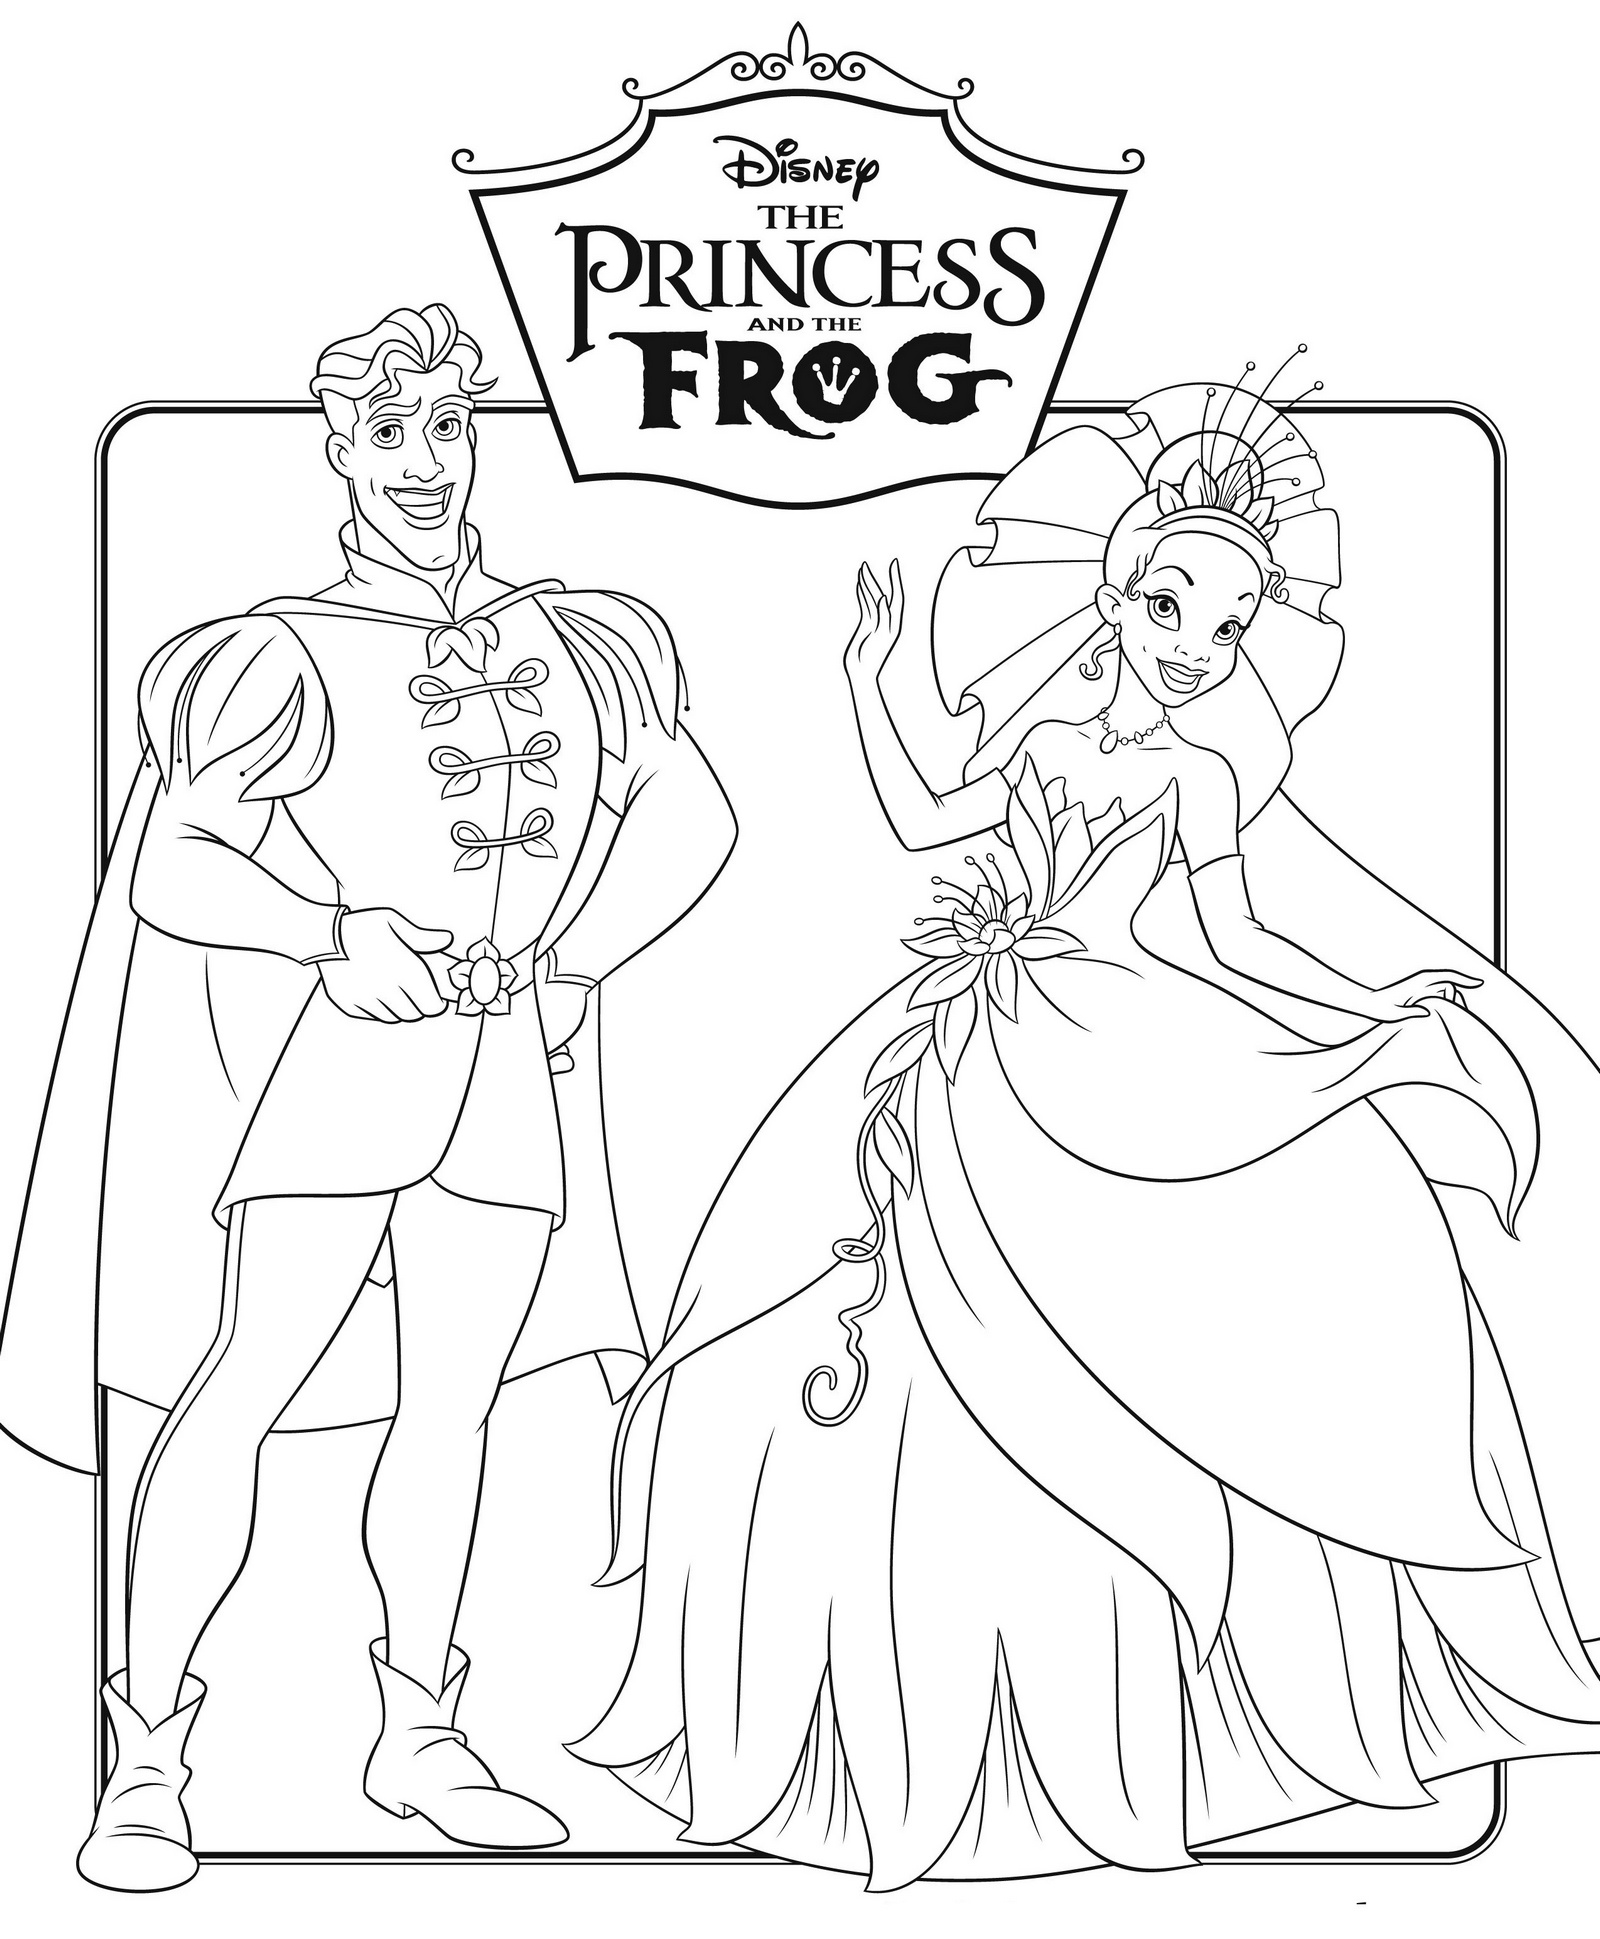 Tiana and Naveen The Princess and the Frog Disney Coloring Pages